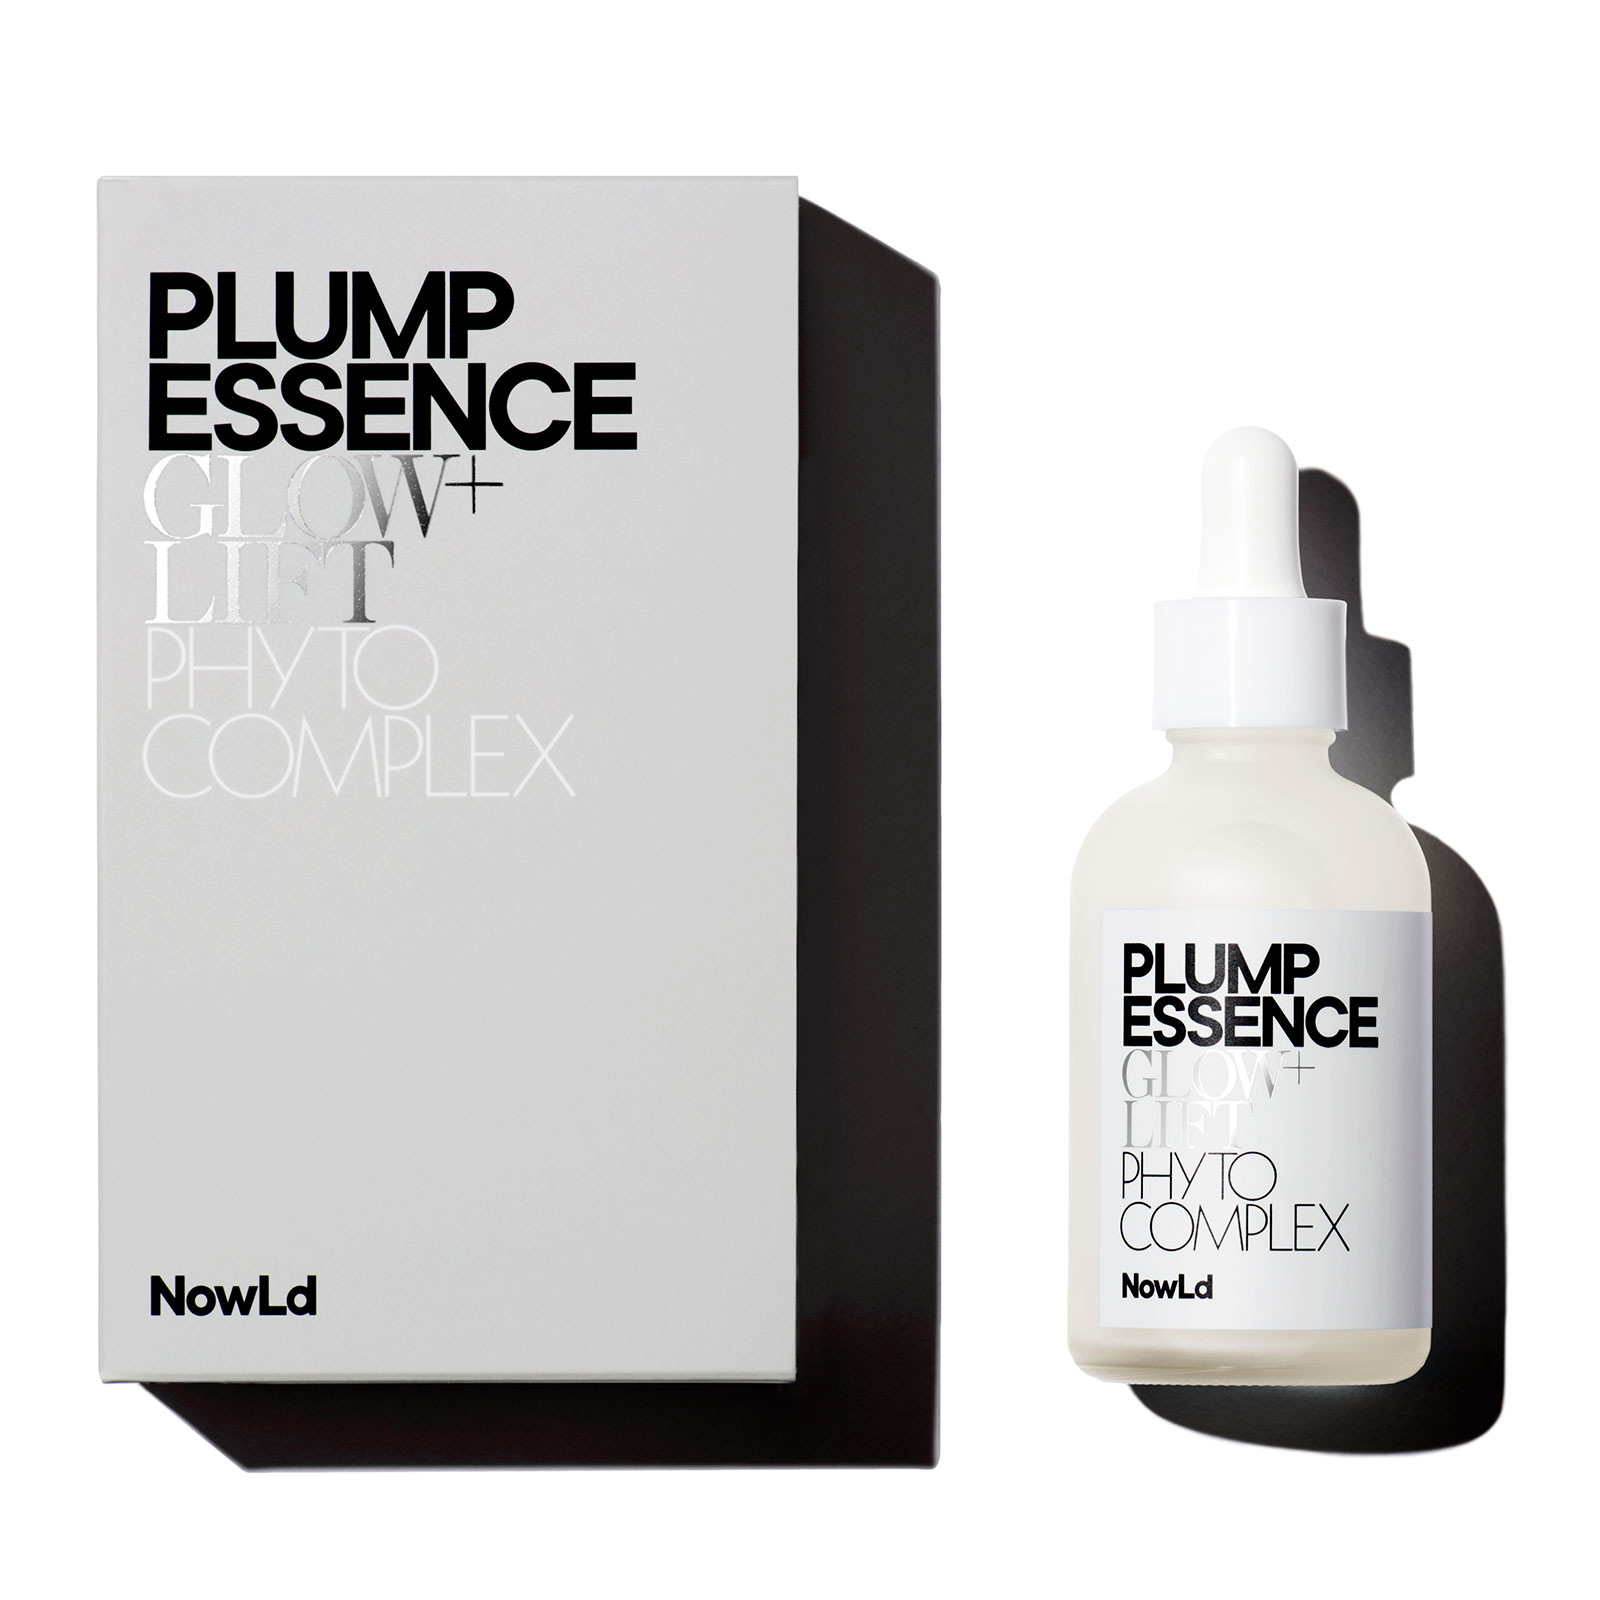 NowLd|PLUMP ESSENCE|Product Shot